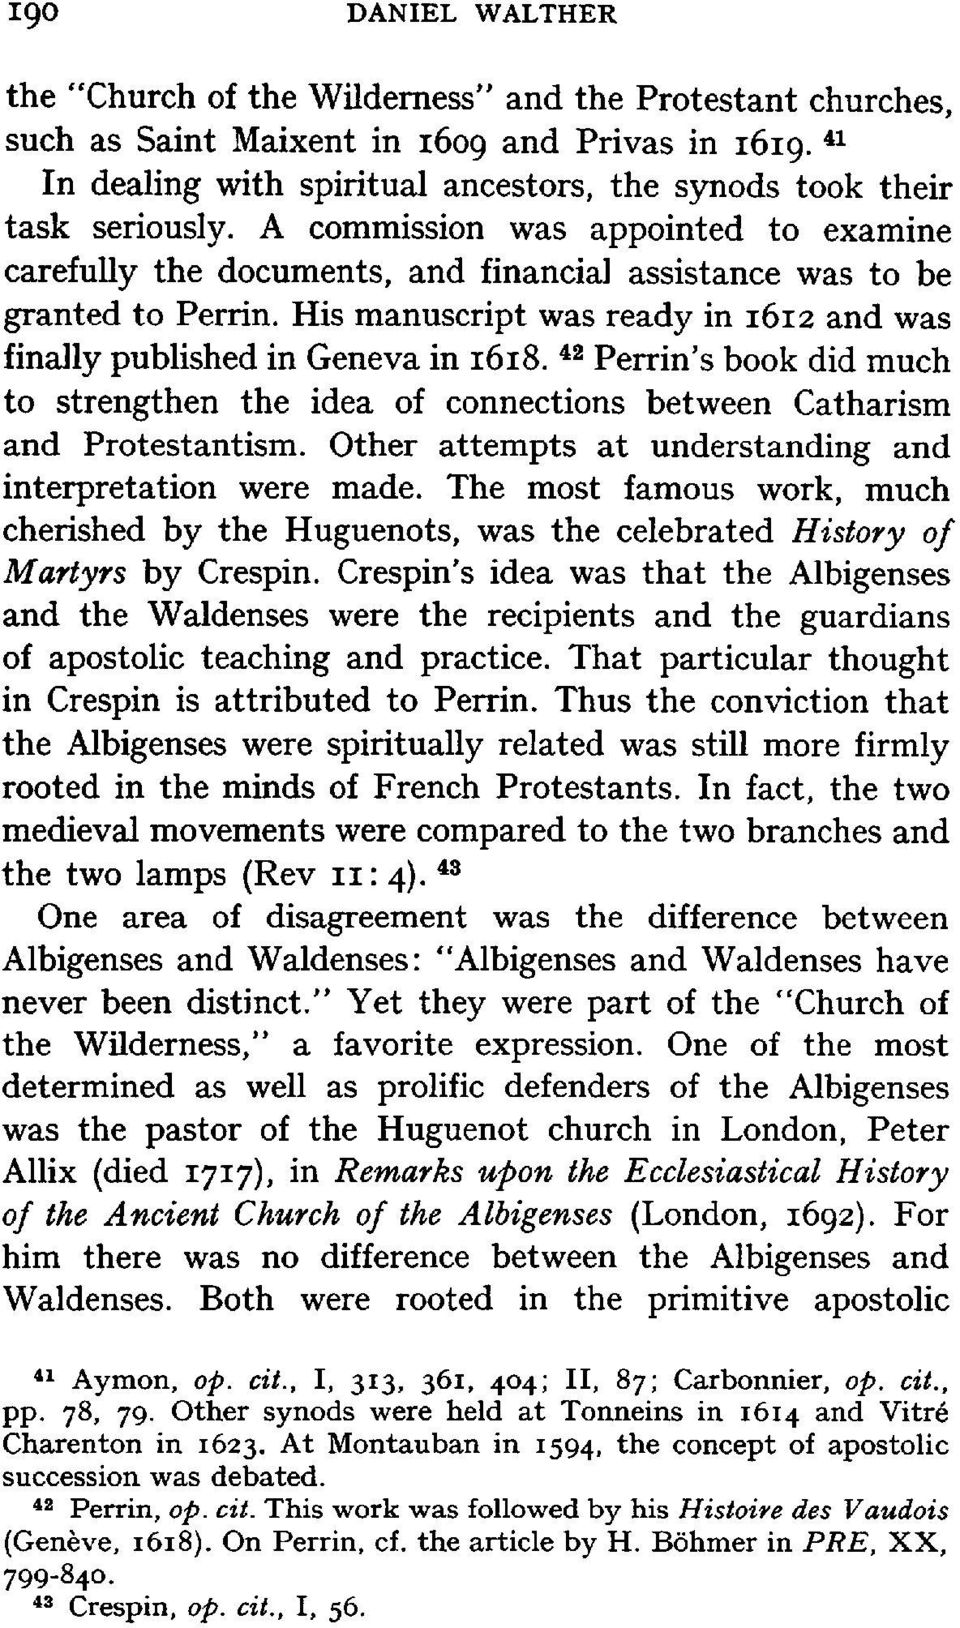 His manuscript was ready in 1612 and was finally published in Geneva in 1618. 42 PerrinJs book did much to strengthen the idea of connections between Catharism and Protestantism.